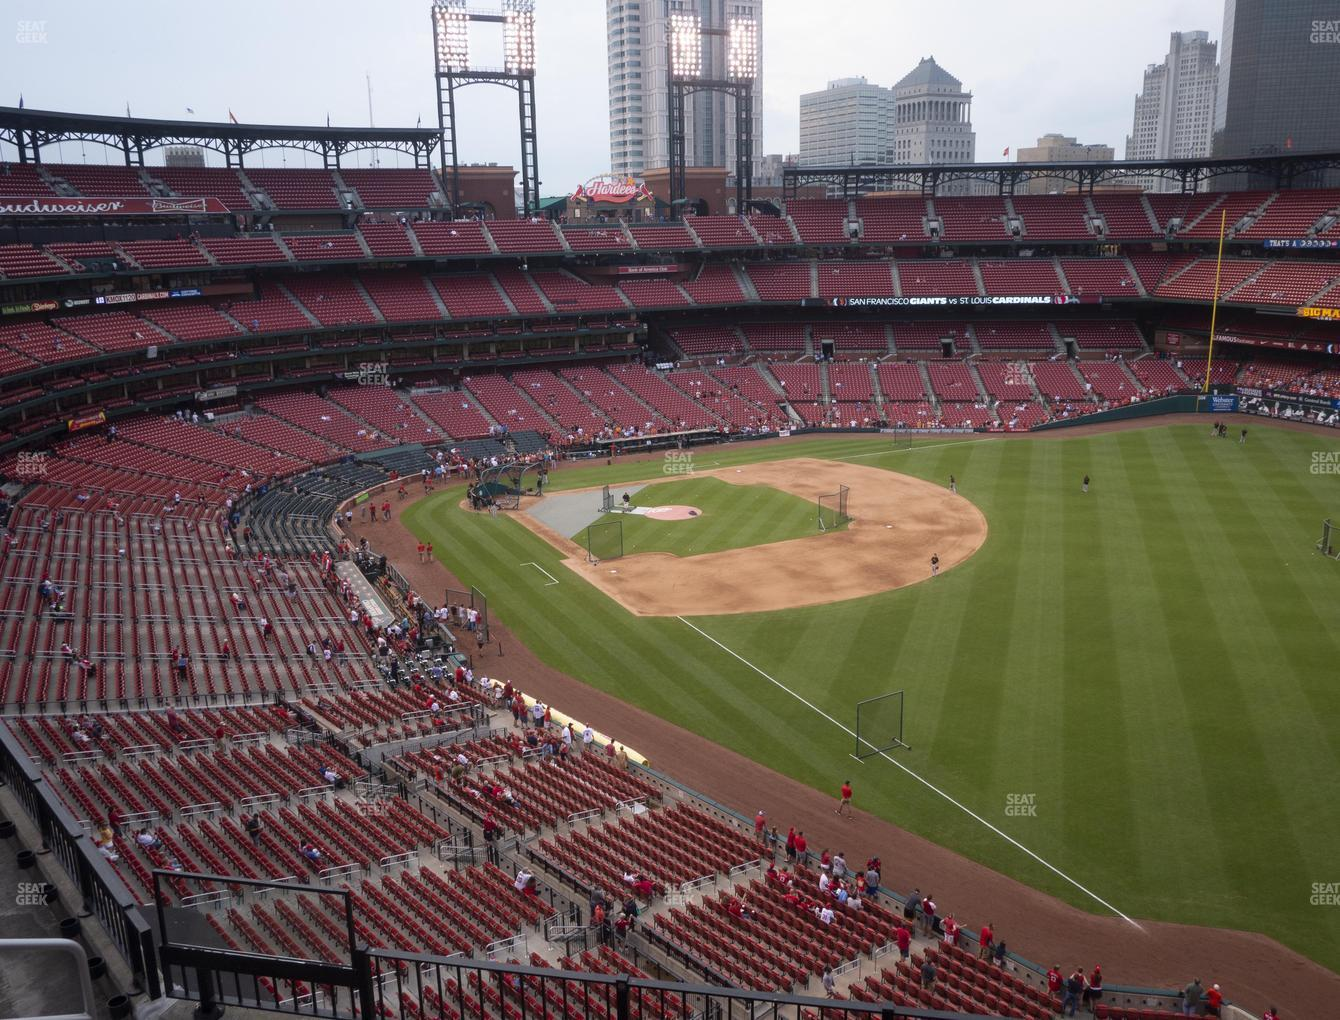 St. Louis Cardinals at Busch Stadium Right Field Pavilion 333 View